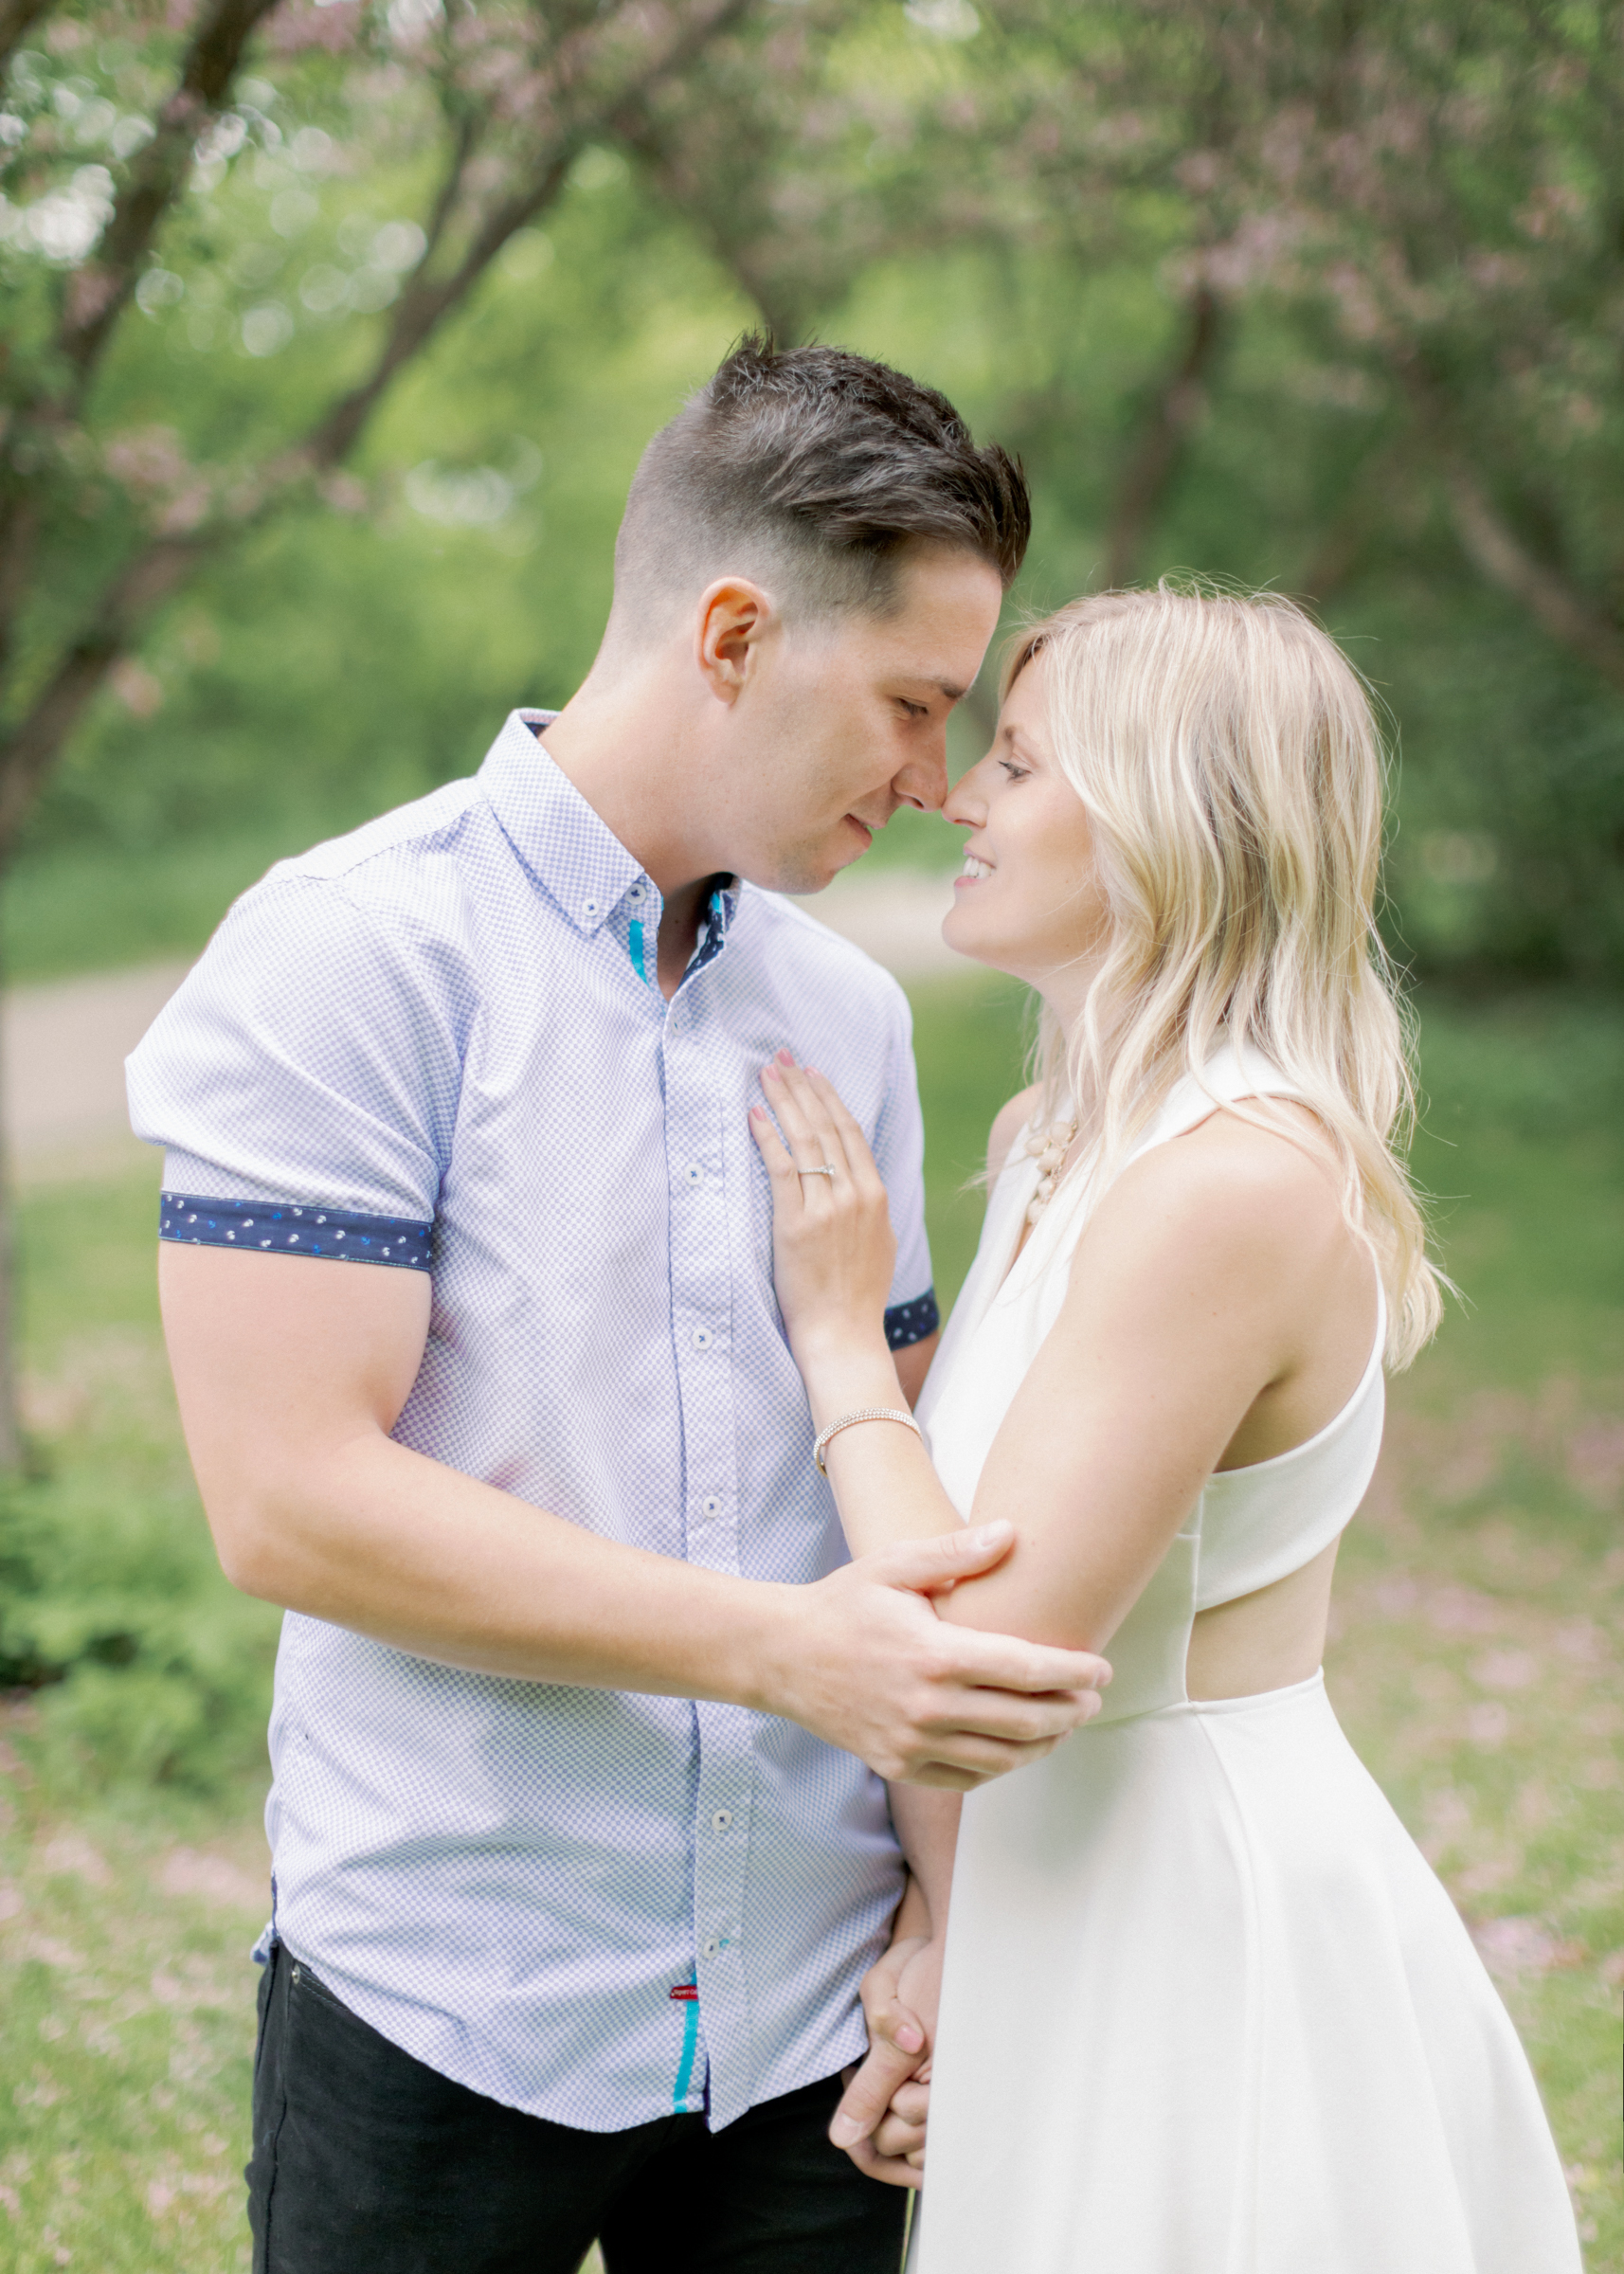 tanner and alyssa nose to nose during engagement session